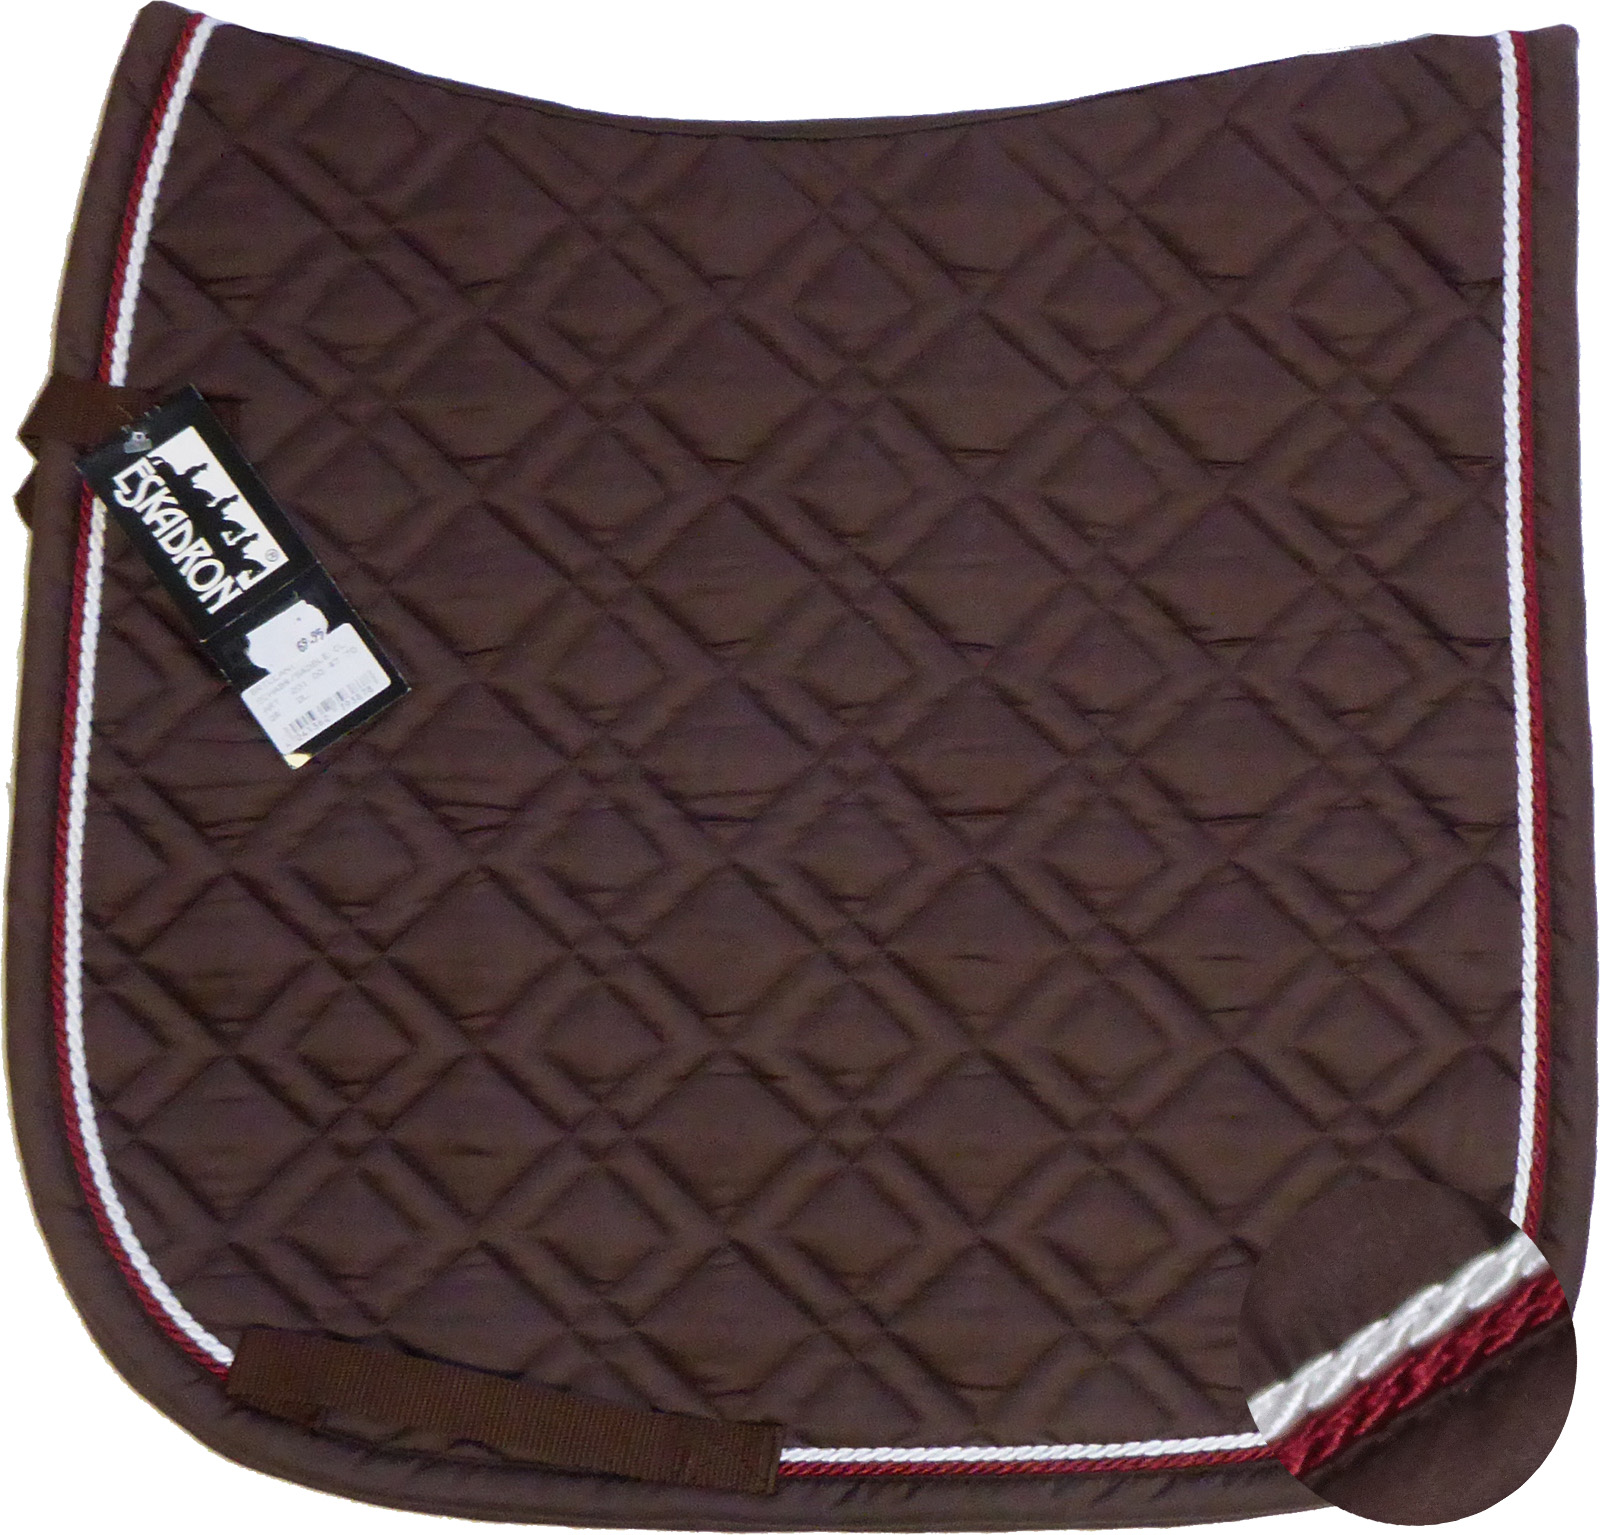 ESKADRON Brillant Schabracke choco, 2fach Kordel darkred/white